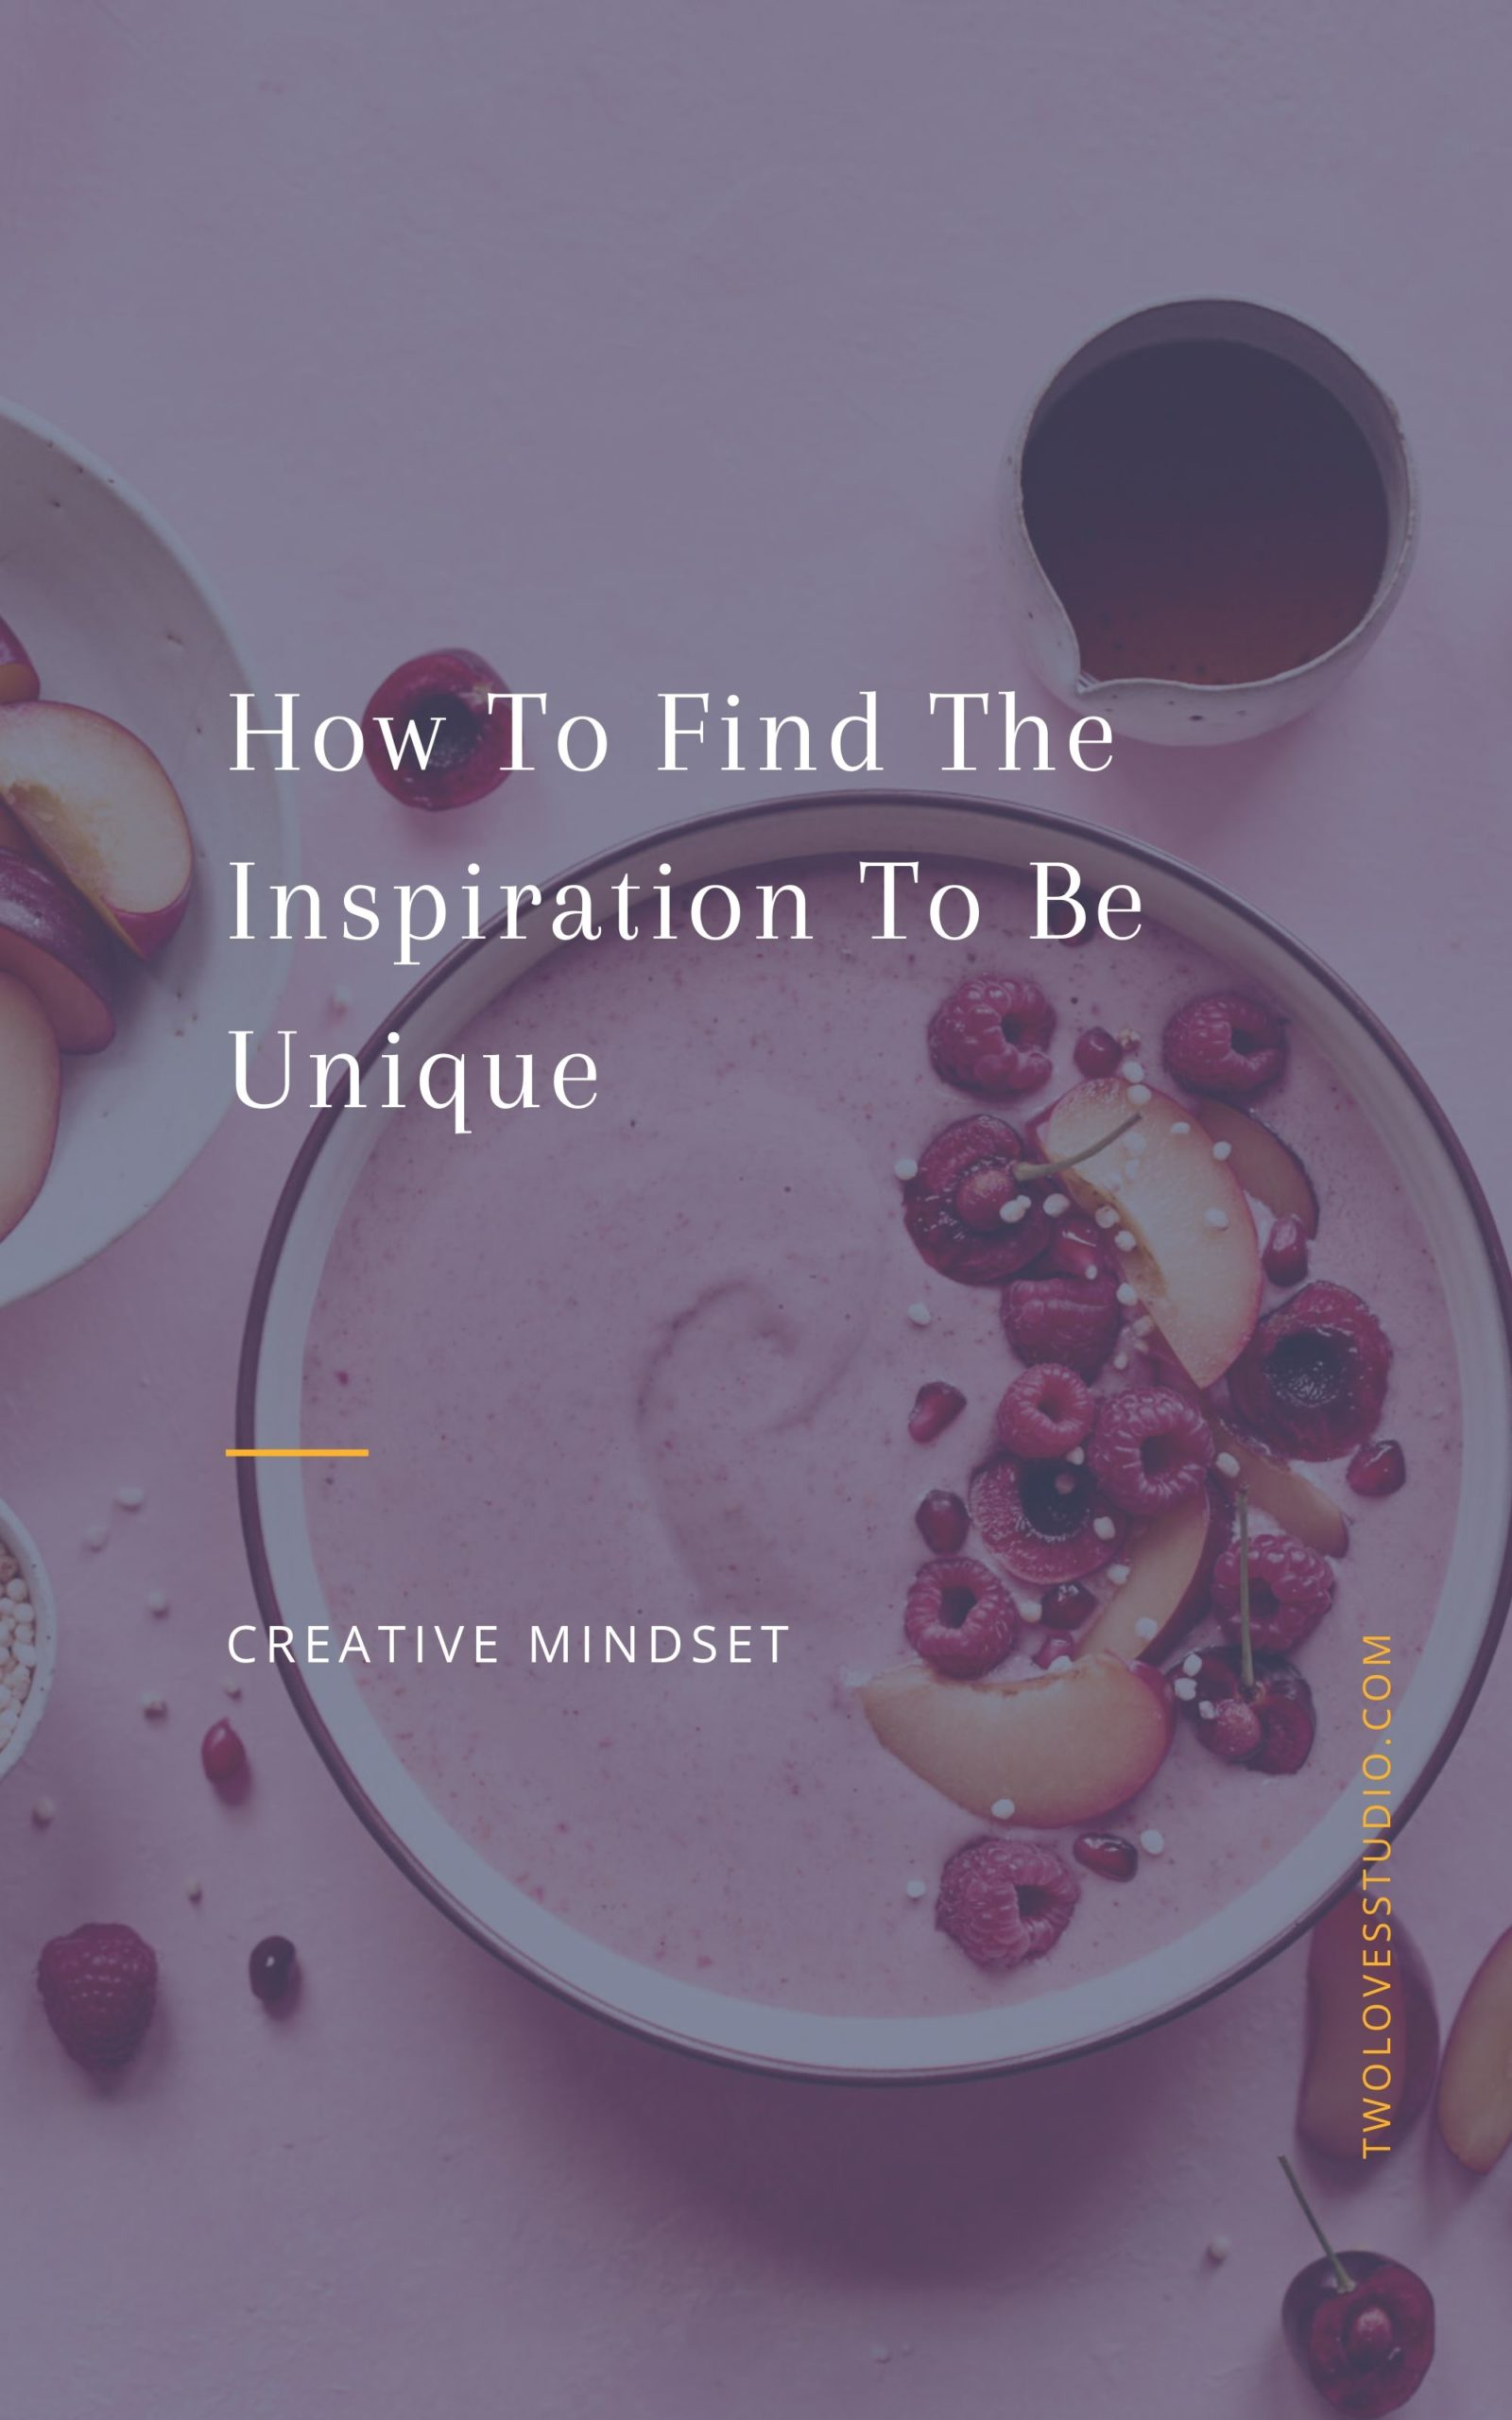 How To Find The Inspiration To Be Unique